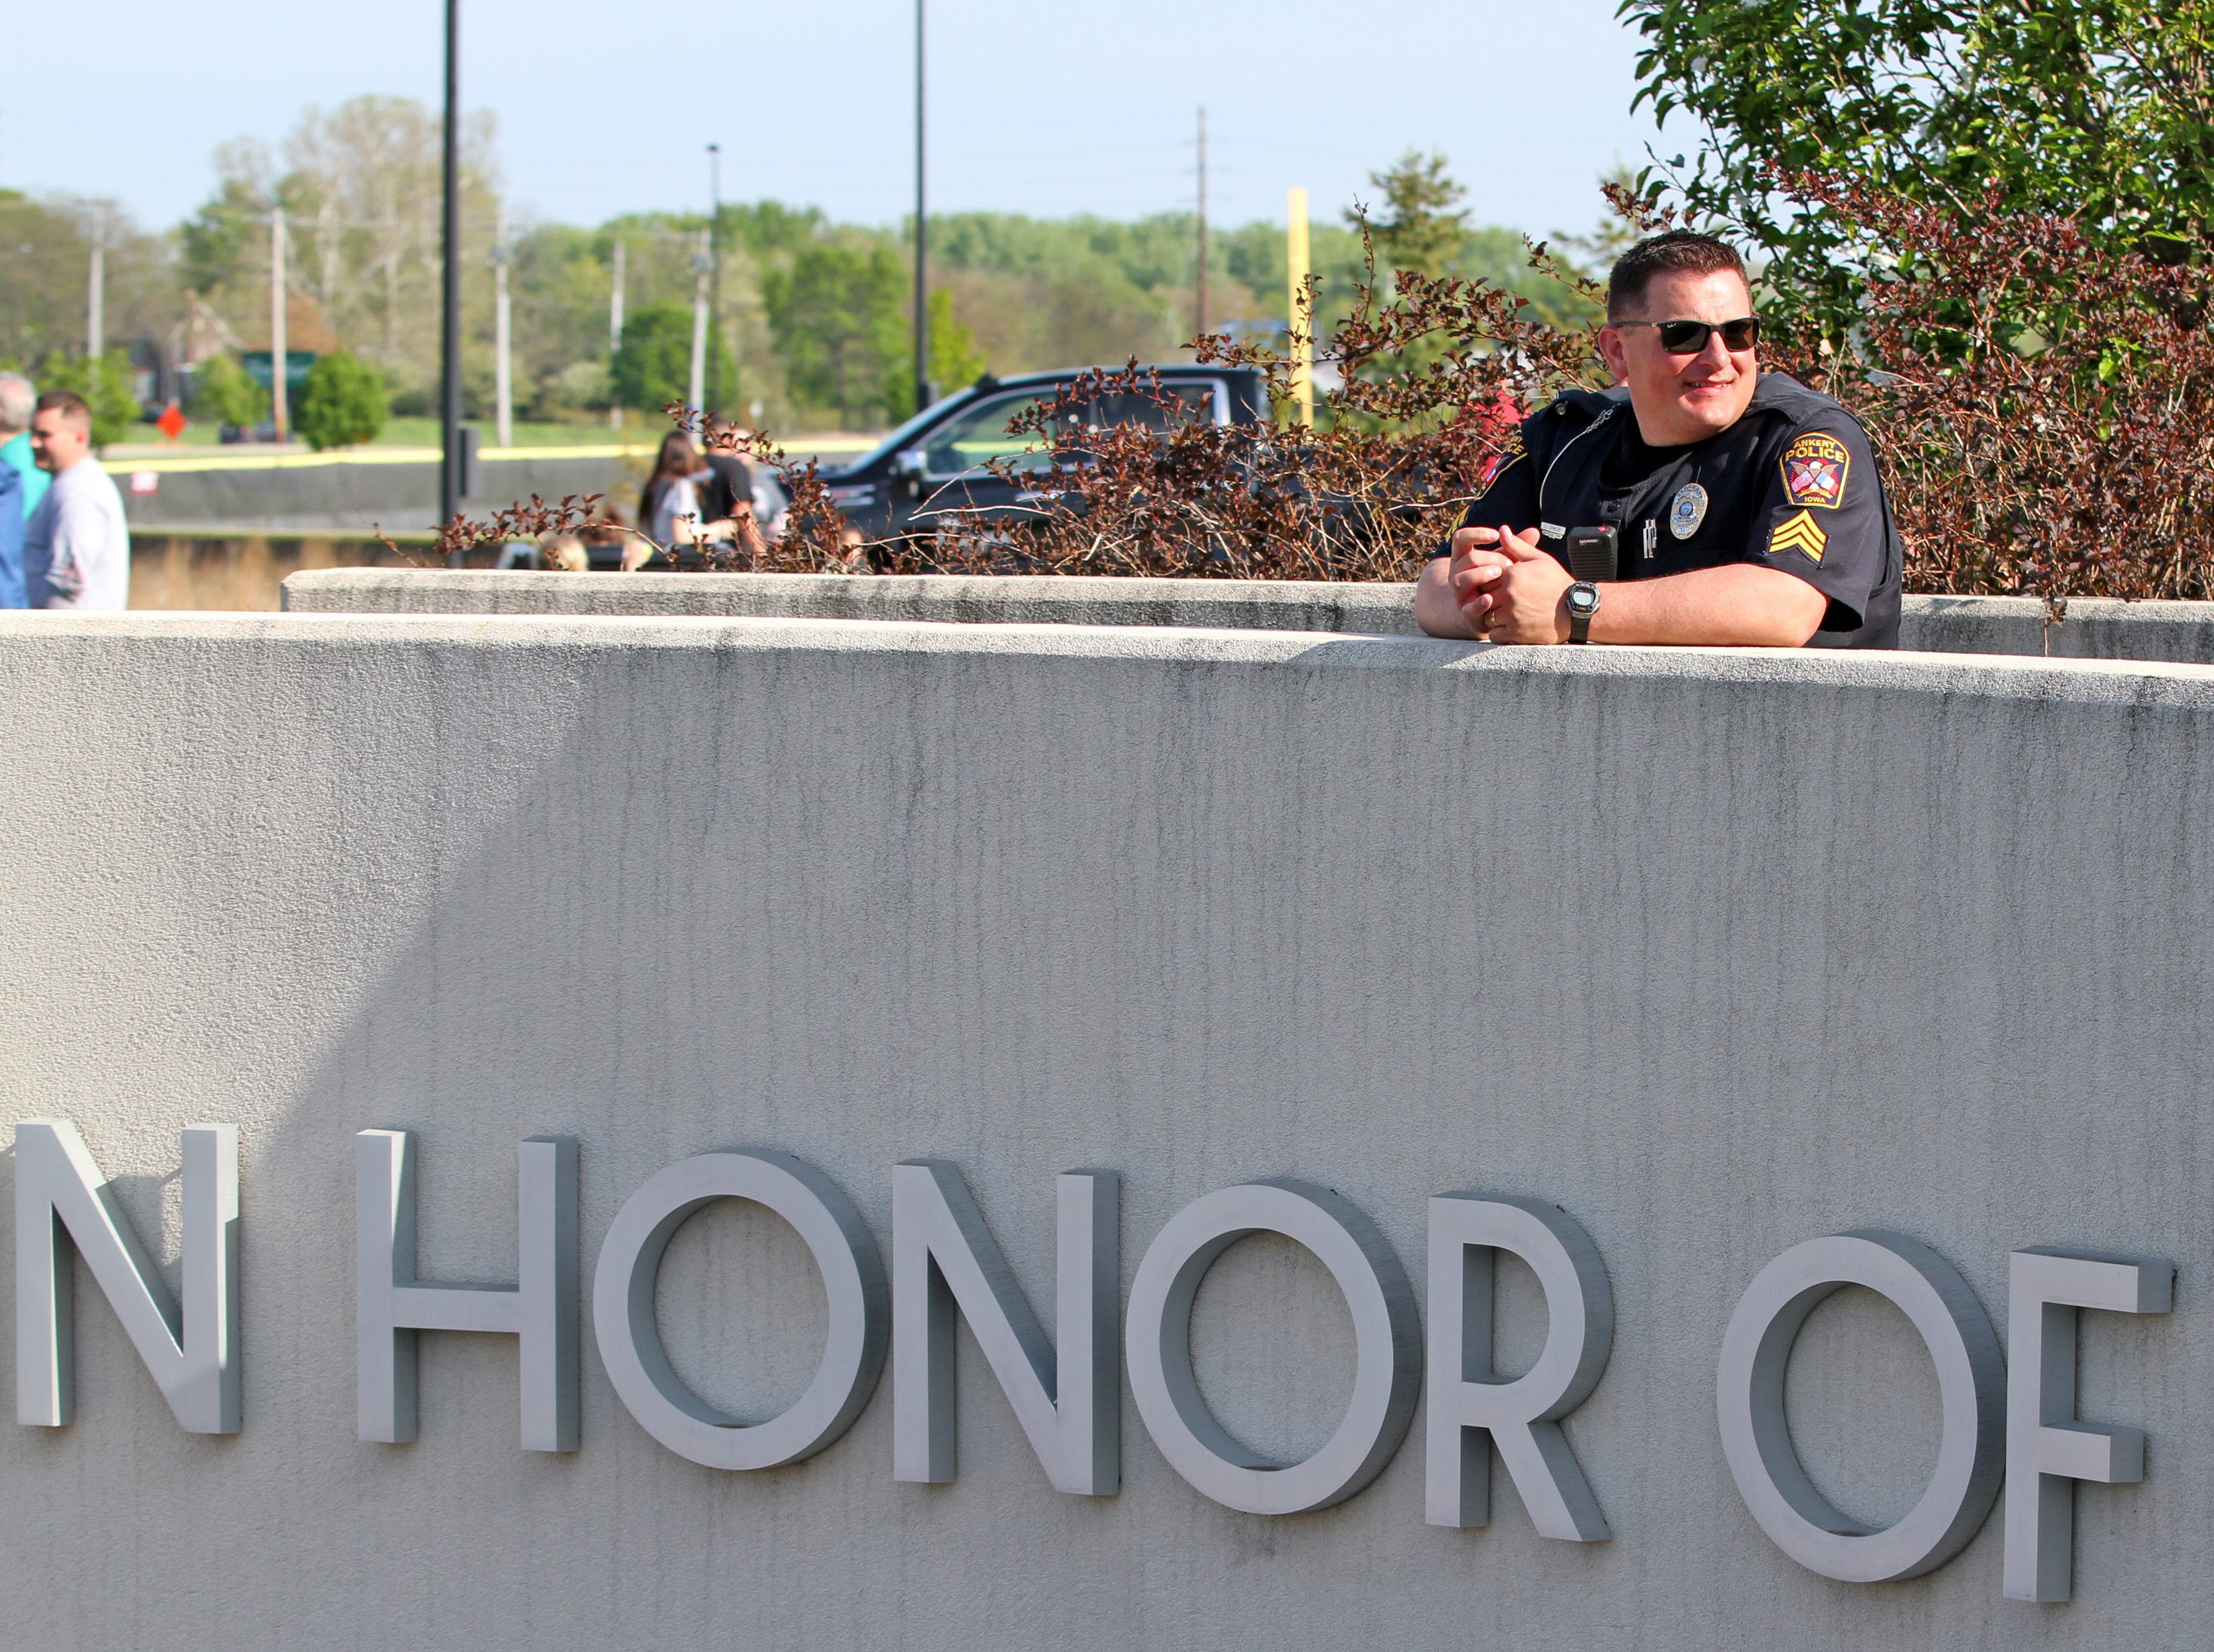 Sgt. Corey Schneden of the Ankeny Police Dept. serves as the Event Organizer during the Ankeny Police Week Community Picnic on Tuesday, May 14, 2019 at the Ankeny Police Headquarters located at 411 SW Ordnance Road. The event featured a tour of the police station, magician Jonathon May, free Chick Fil-A sandwiches for the first 1,000 guests, free Kona Ice, temporary tattoos, and a great opportunity to meet the officers who protect and serve the City of Ankeny.